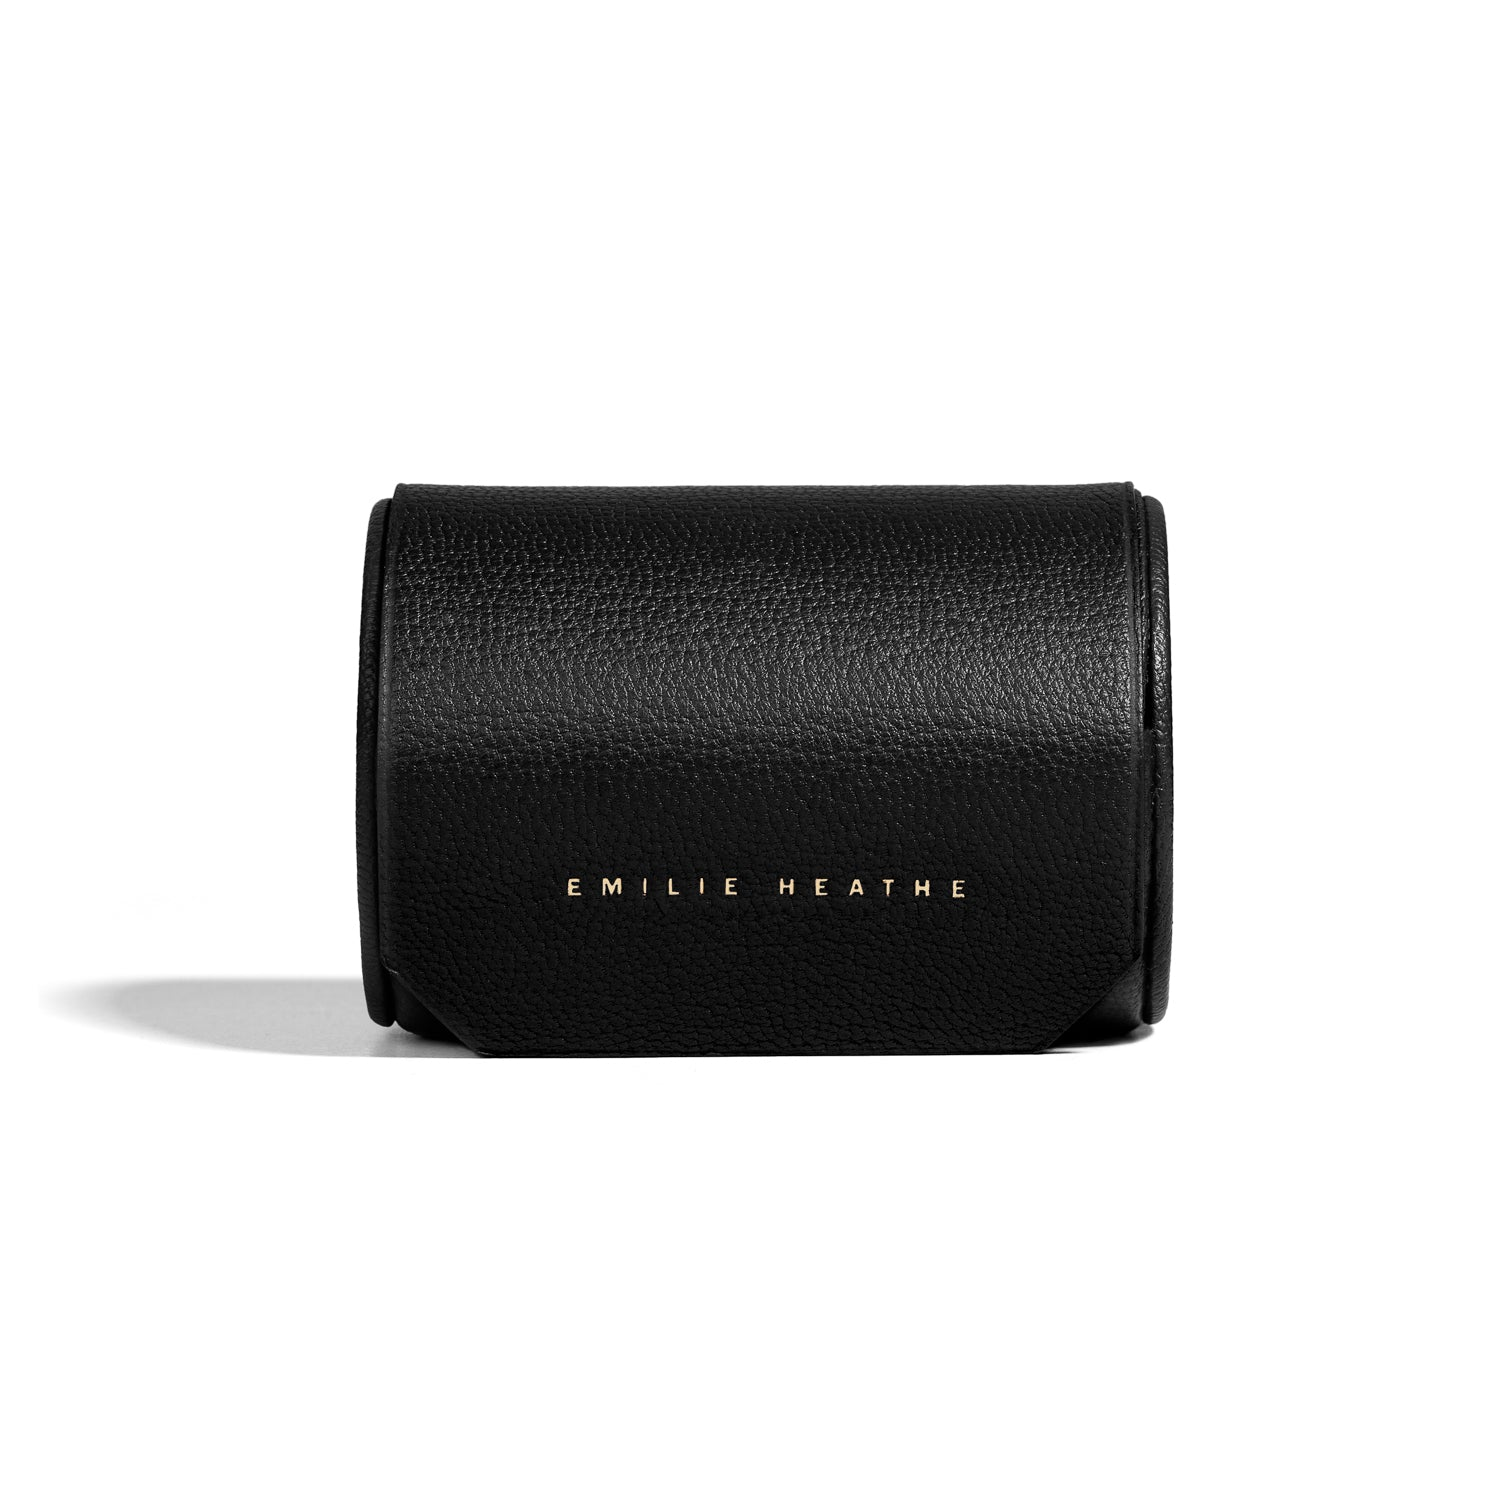 THE BB-the artist leather magnetic case emilie heathe